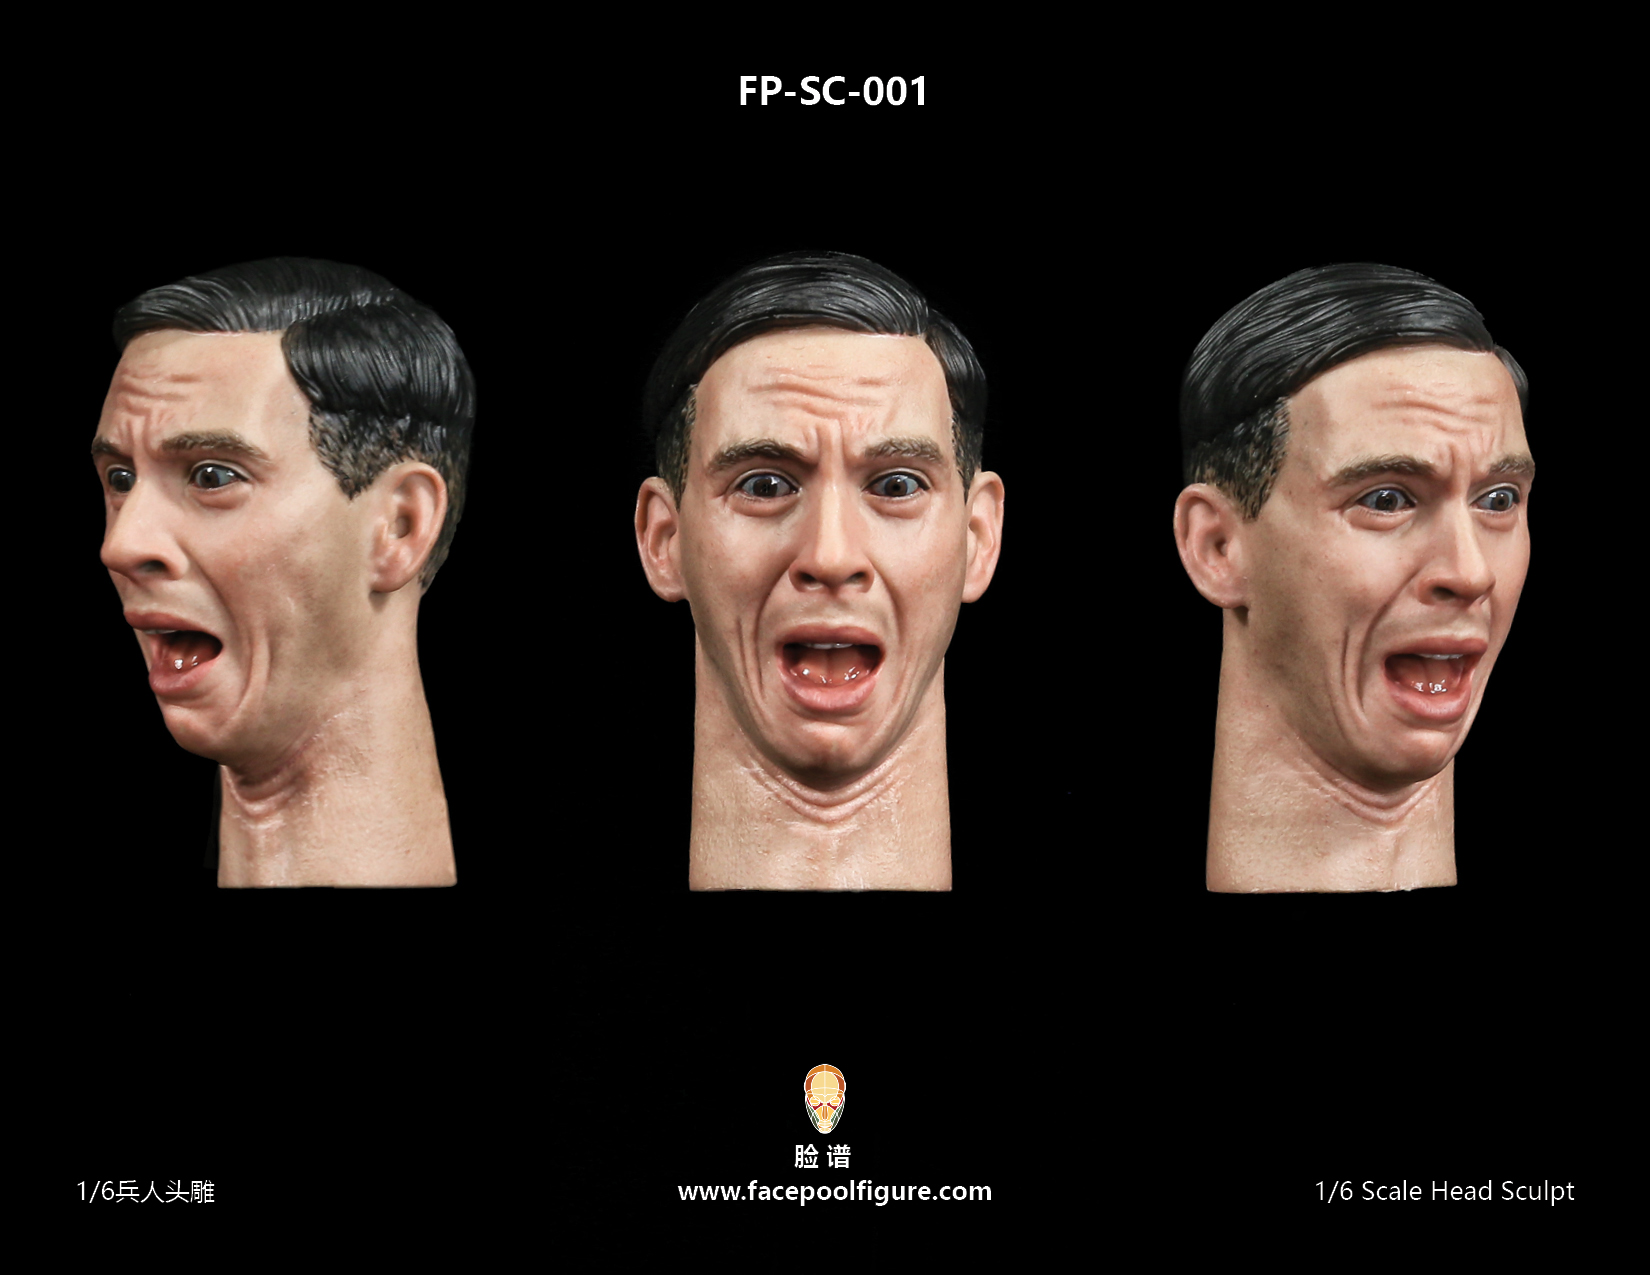 FacepoolFigure 1/6 Male Head Sculpt With Expression FP-SC-001